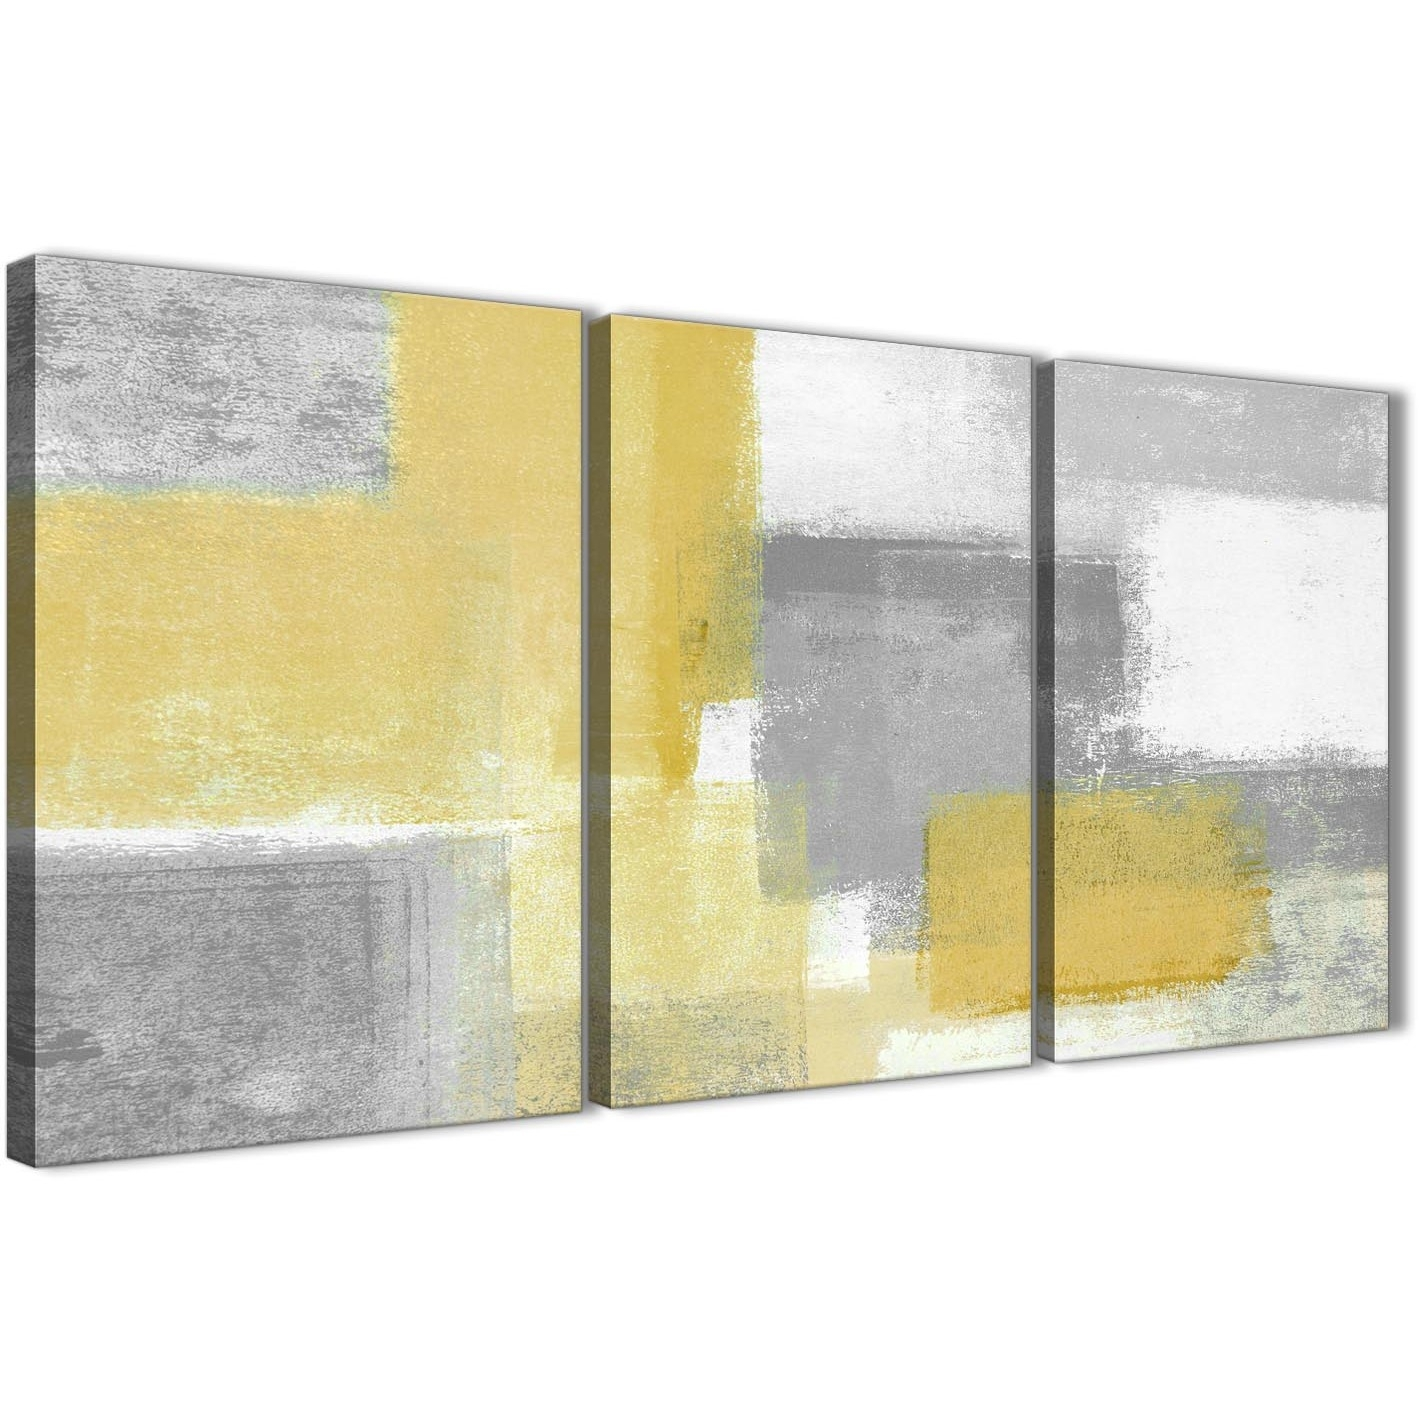 Excellent Lazart Metal Wall Art Pictures Inspiration - The Wall Art ...